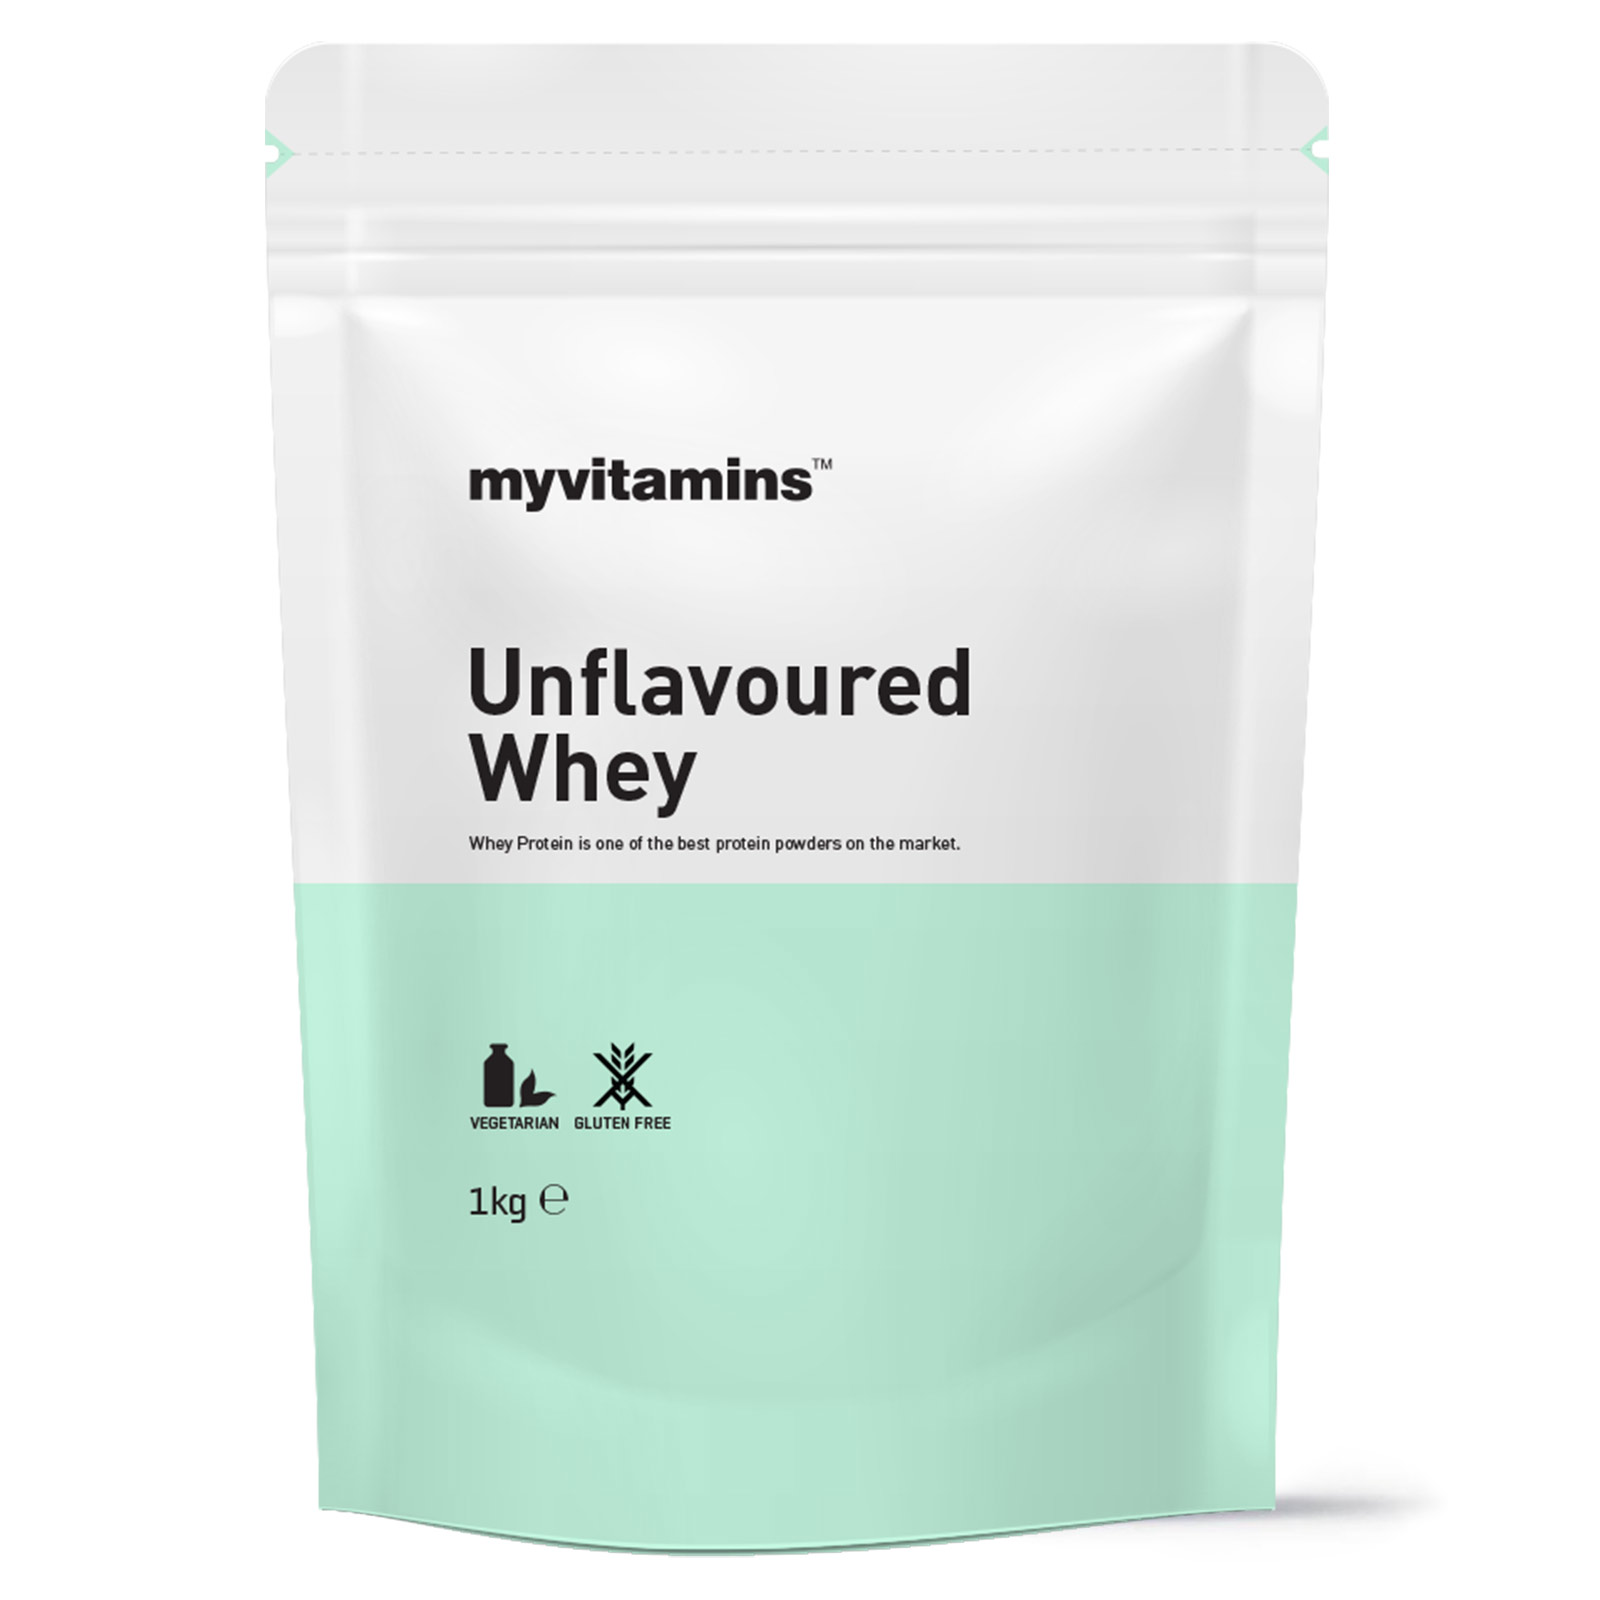 Pouch of unflavoured whey protein